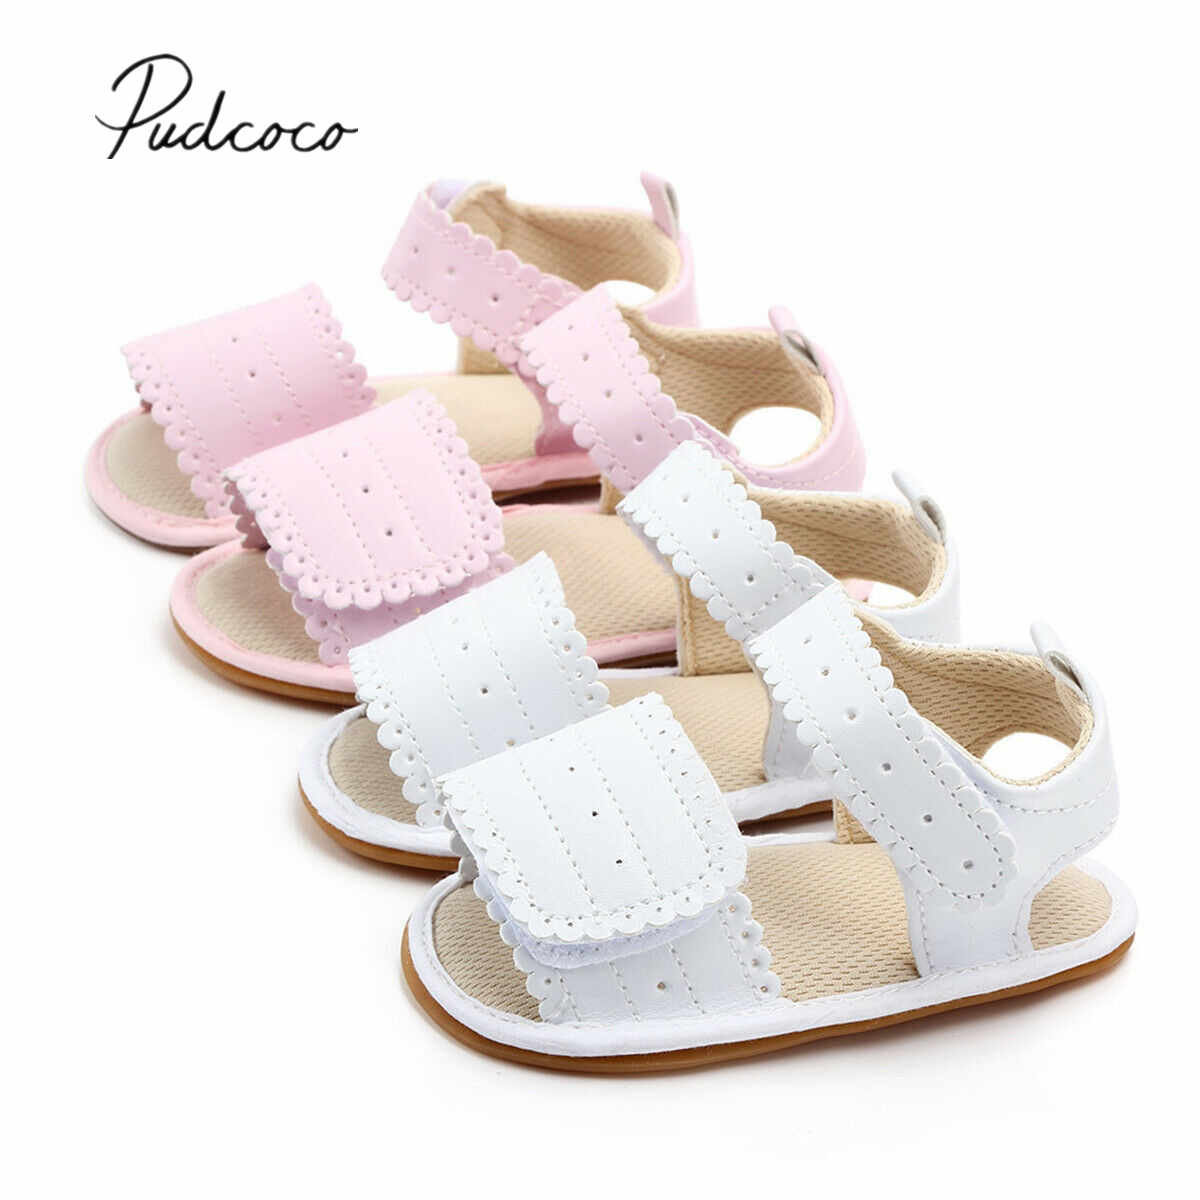 2019 Baby Sandals Clogs Infant Newborn Baby Girls Soft Sole Sandals Toddlers Summer Sandal Hollow Out Solid Crib Shoes 0-12M